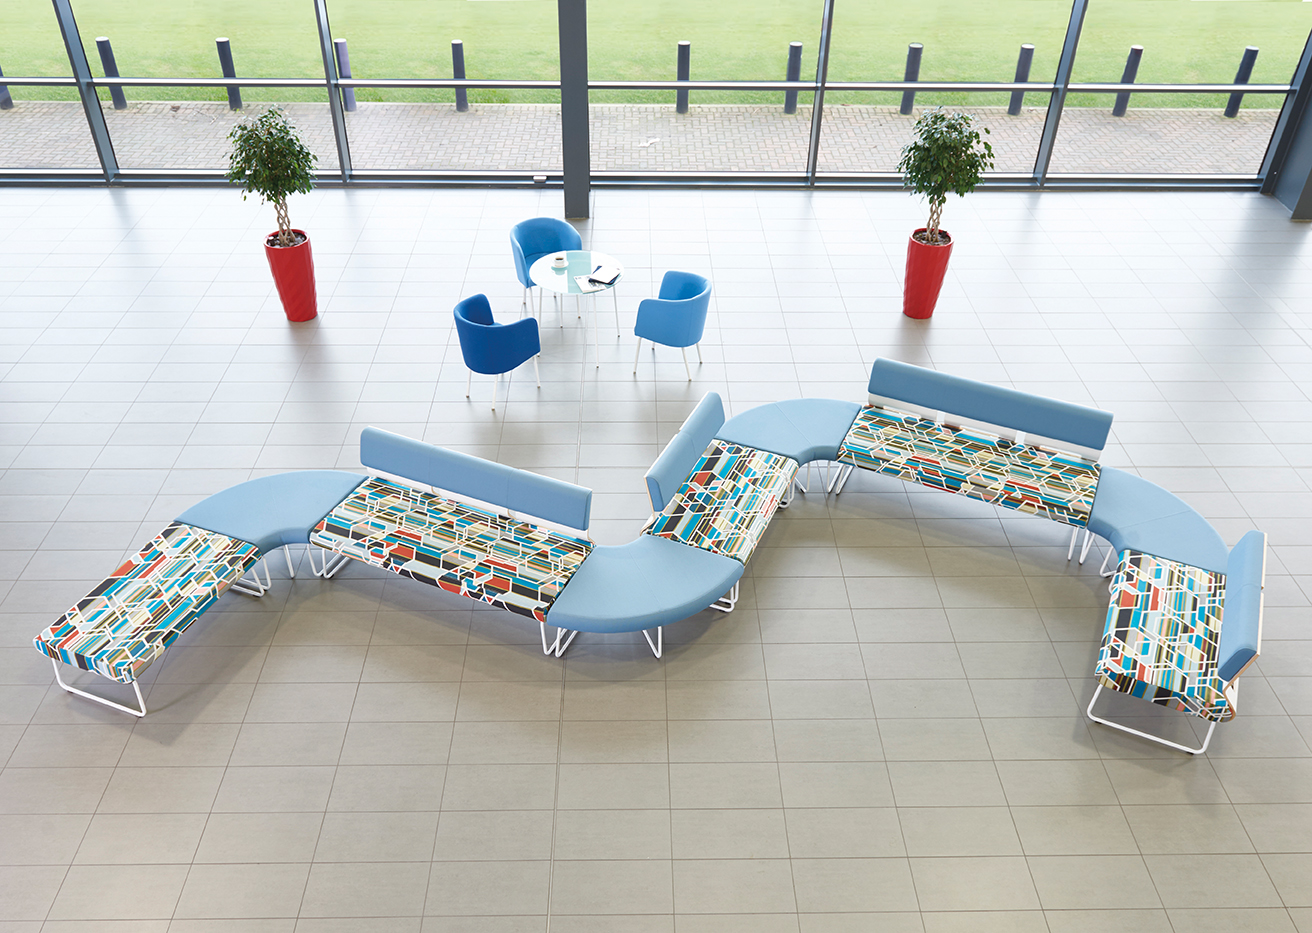 CONTRACT FURNITURE MANUFACTURER